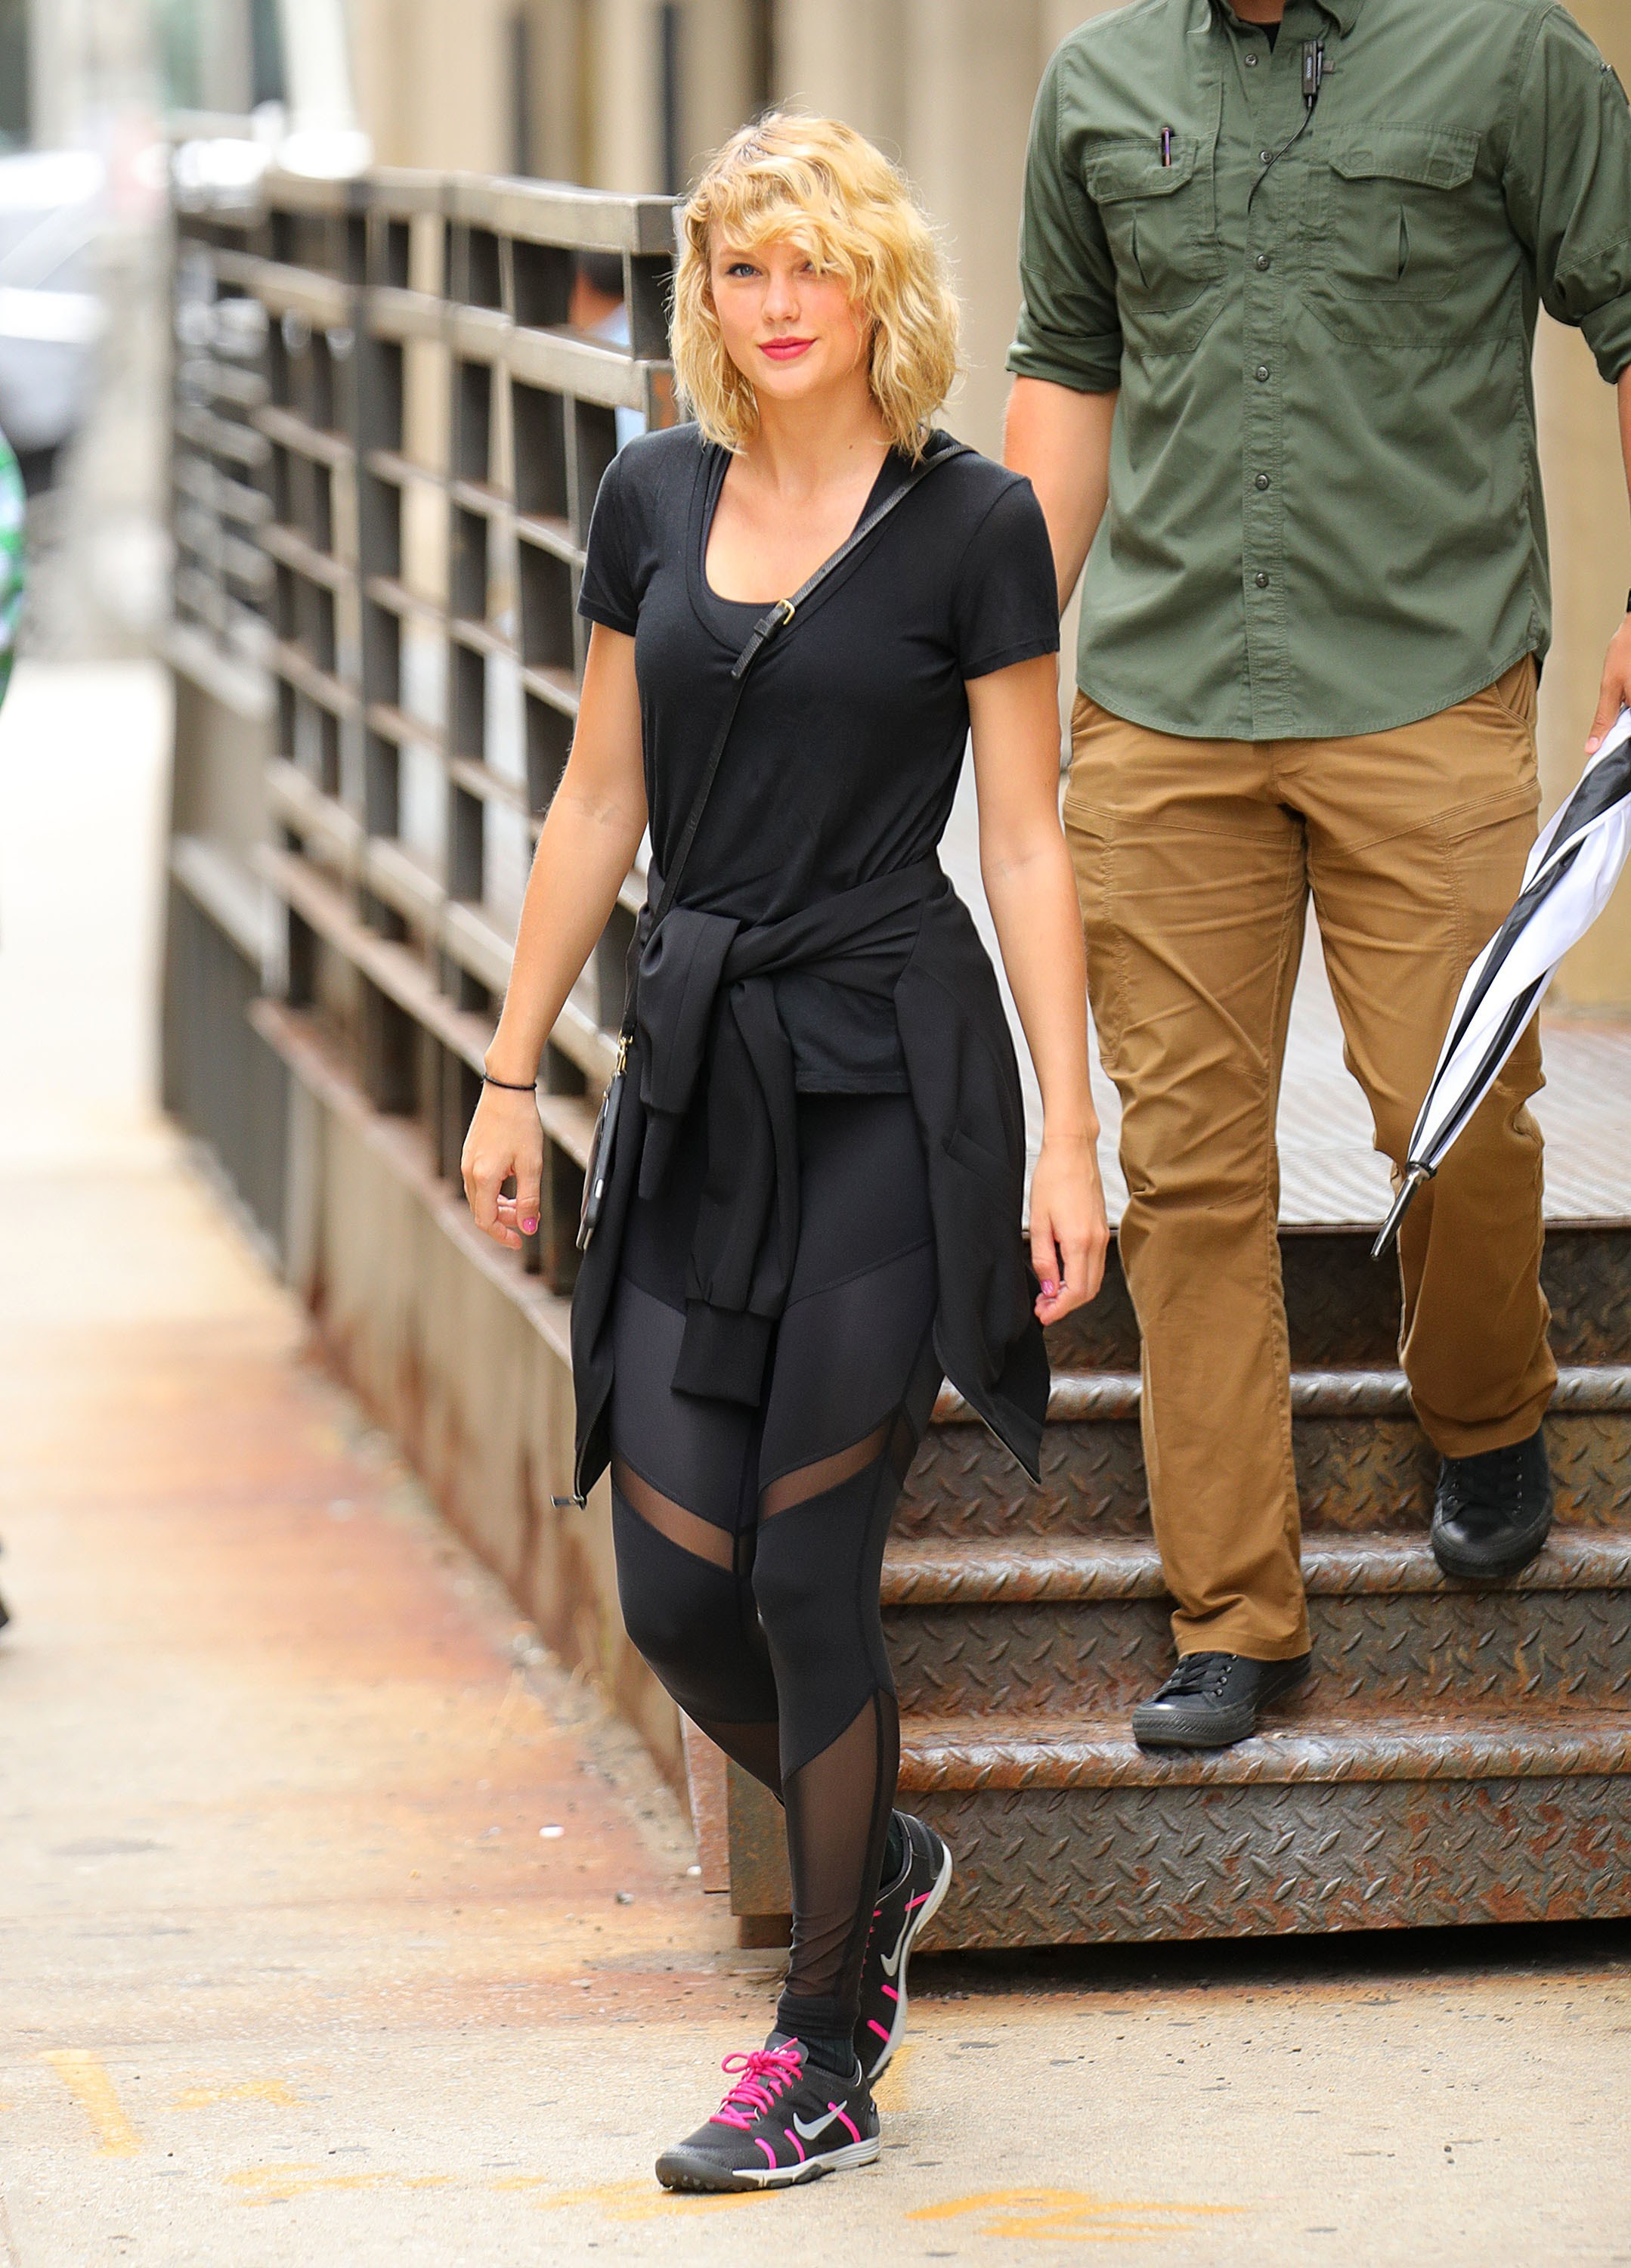 Taylor Swift is 'hanging with her girls' following Tom Hiddleston split